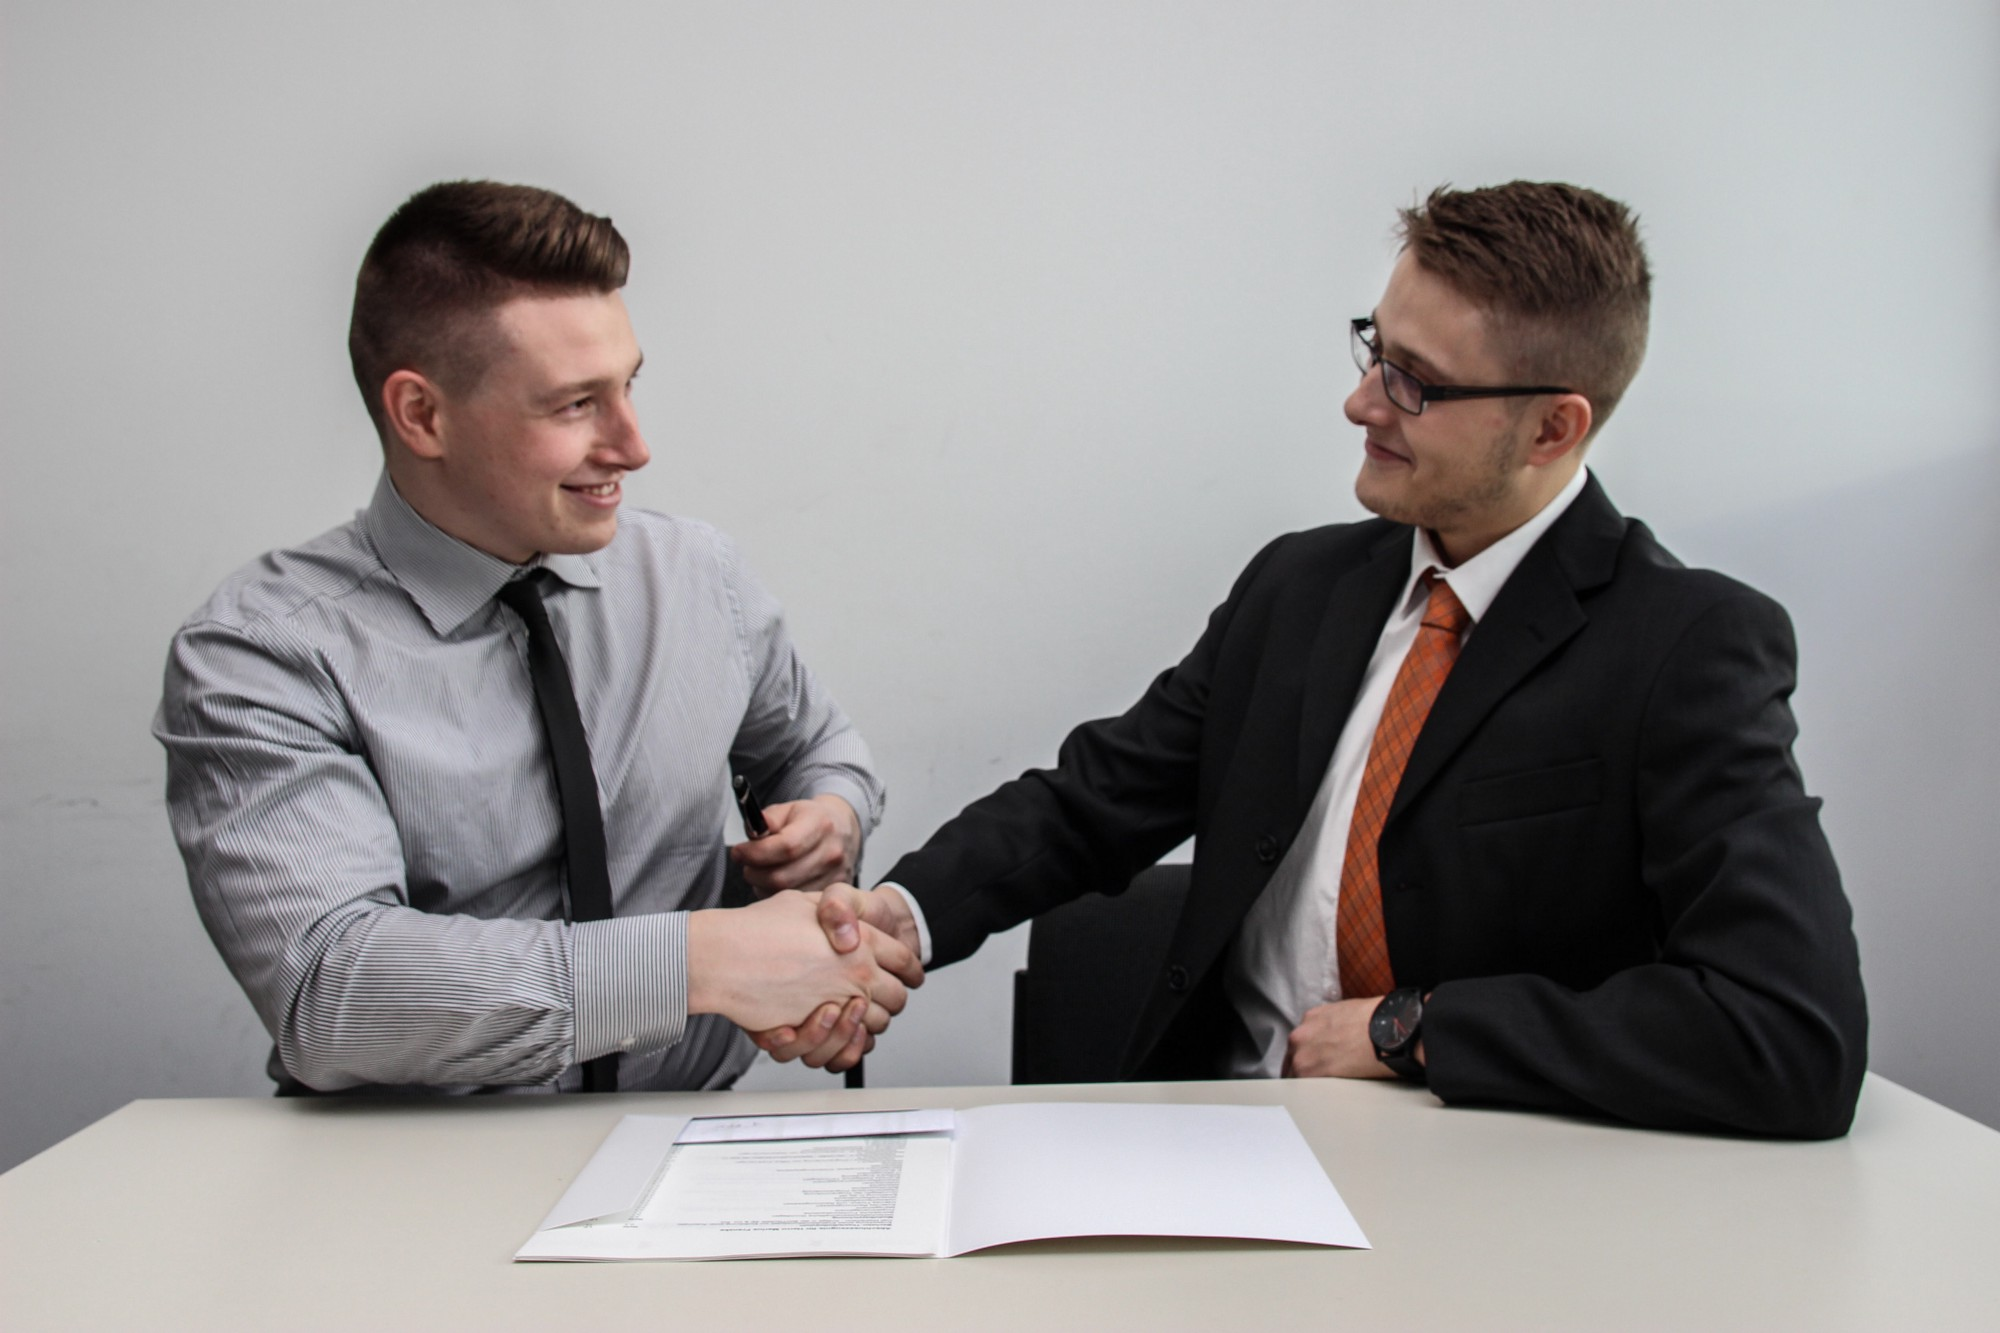 Two young men in business suits shaking hands